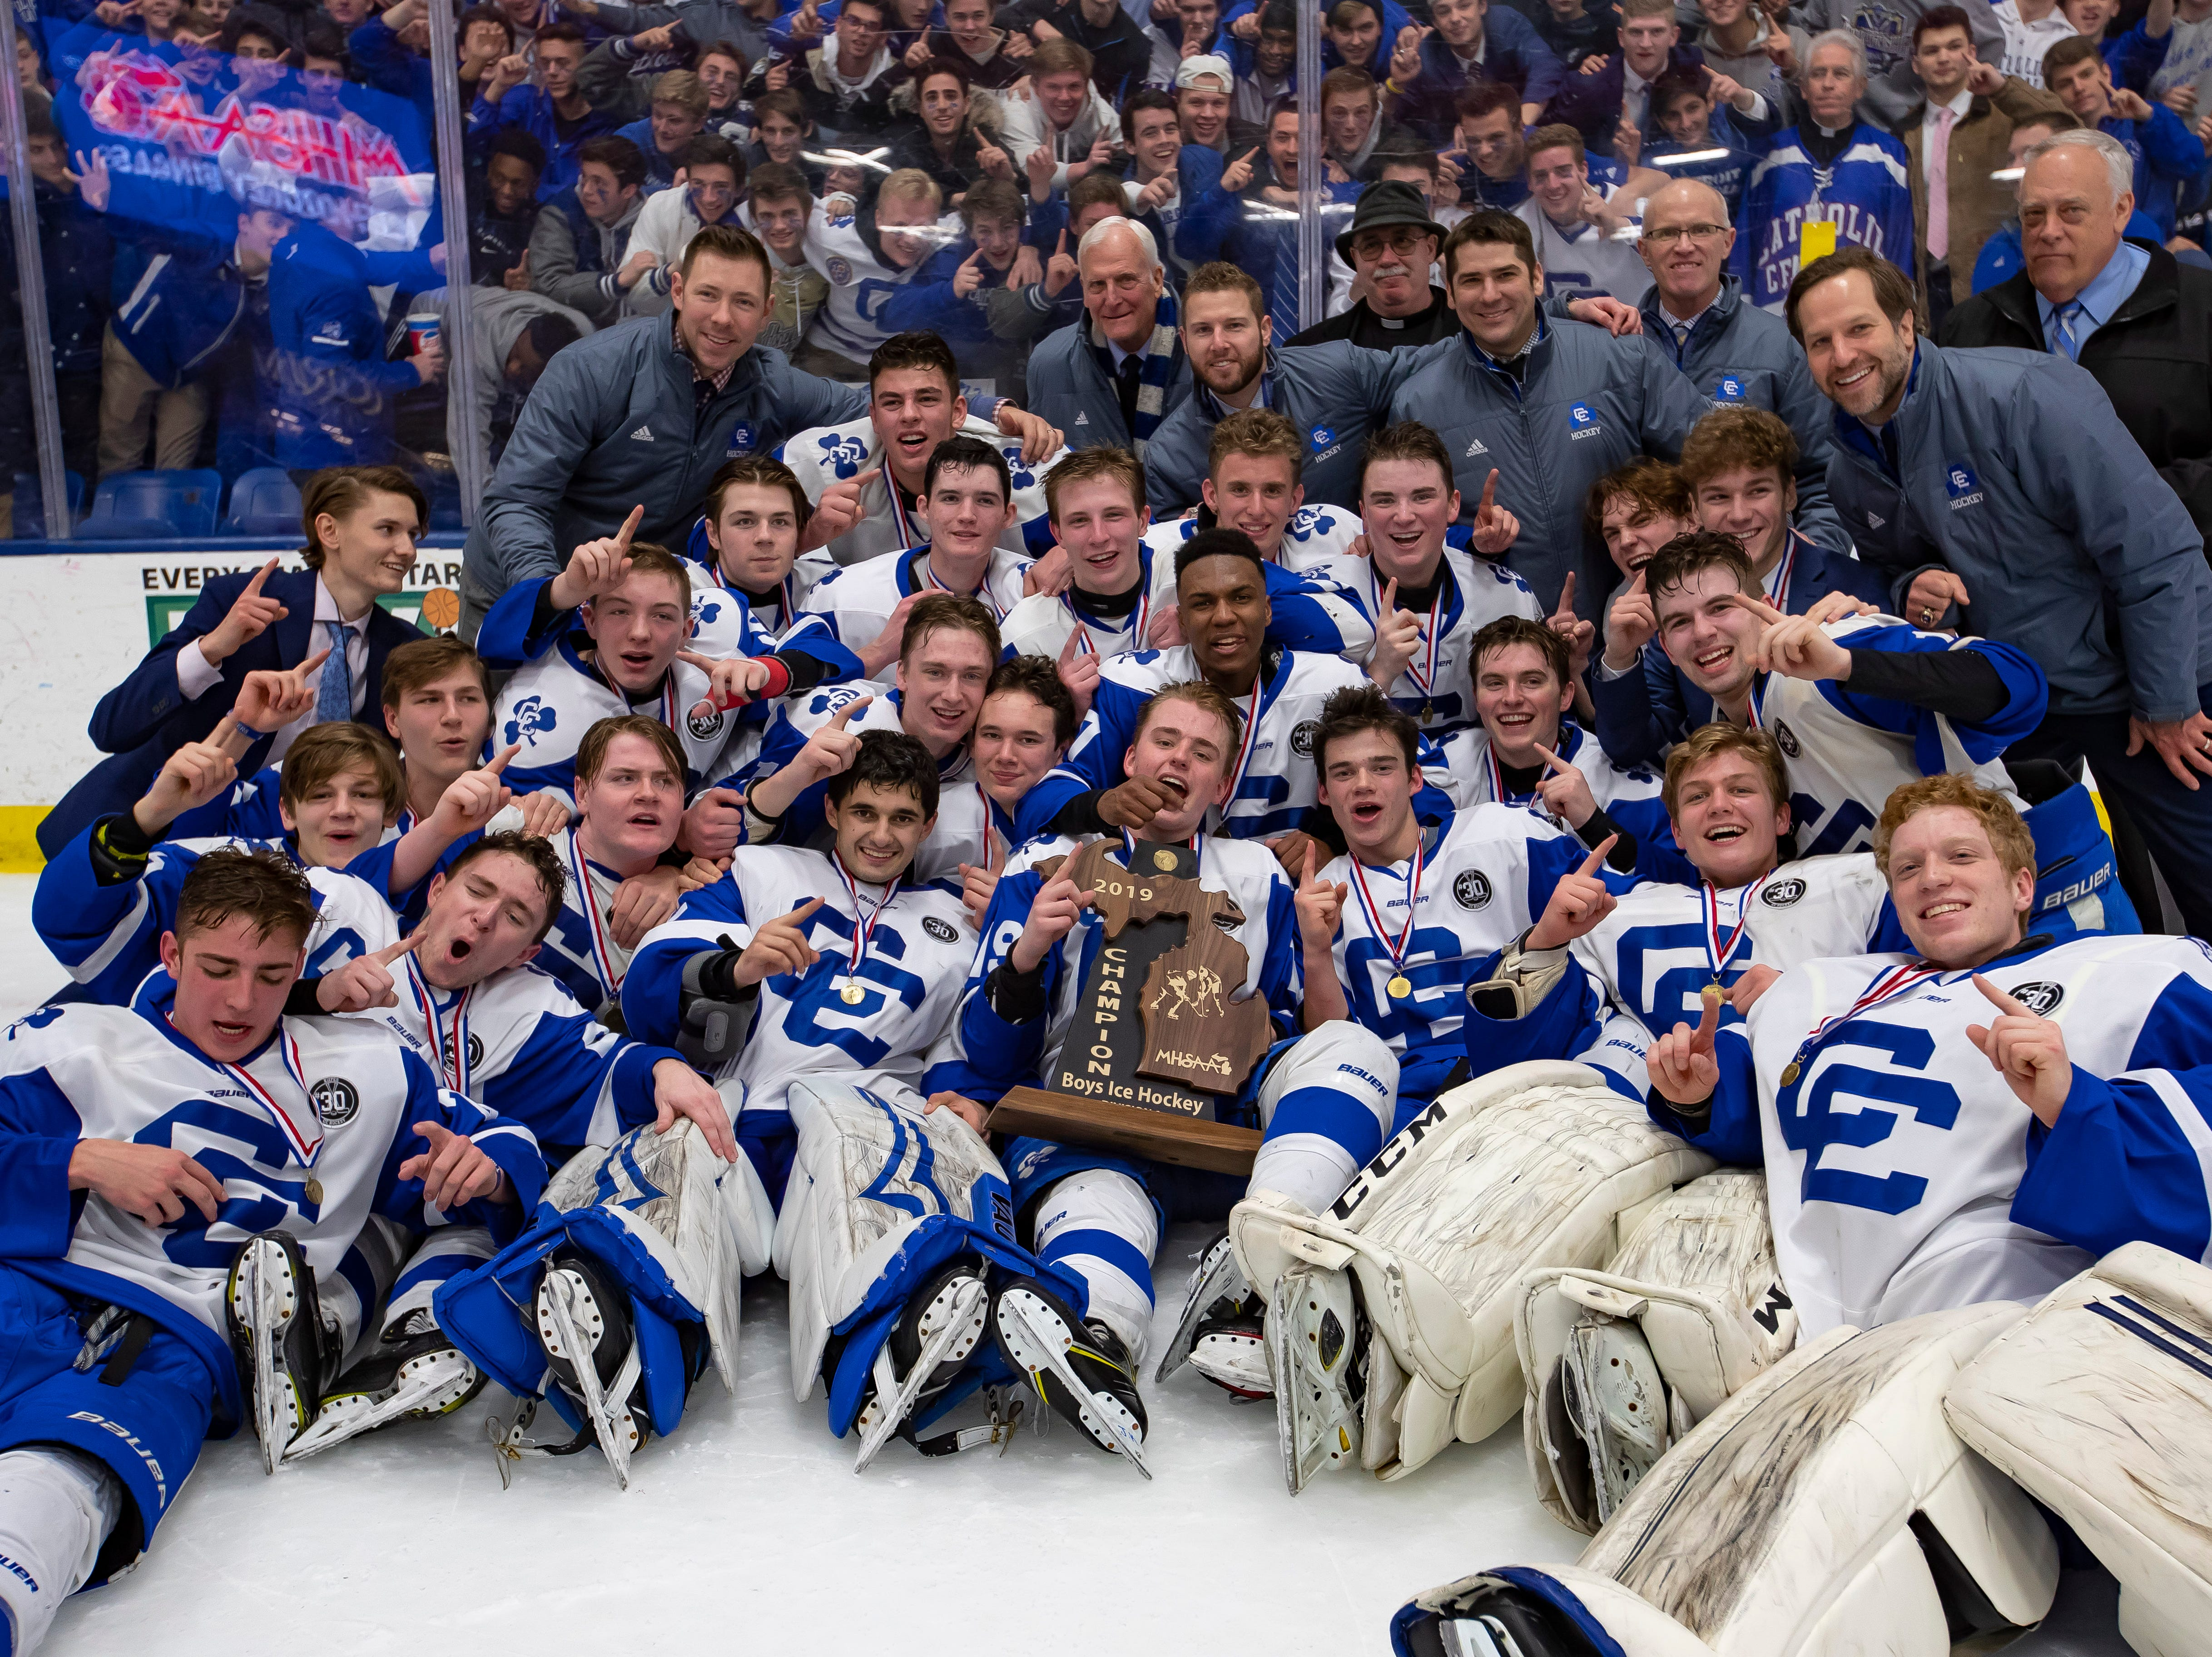 Catholic Central's hockey team poses for a team picture after defeating Saginaw Heritage 3-1 to win the MHSAA Division 1 Championship at USA Arena in Plymouth on March 9, 2019.